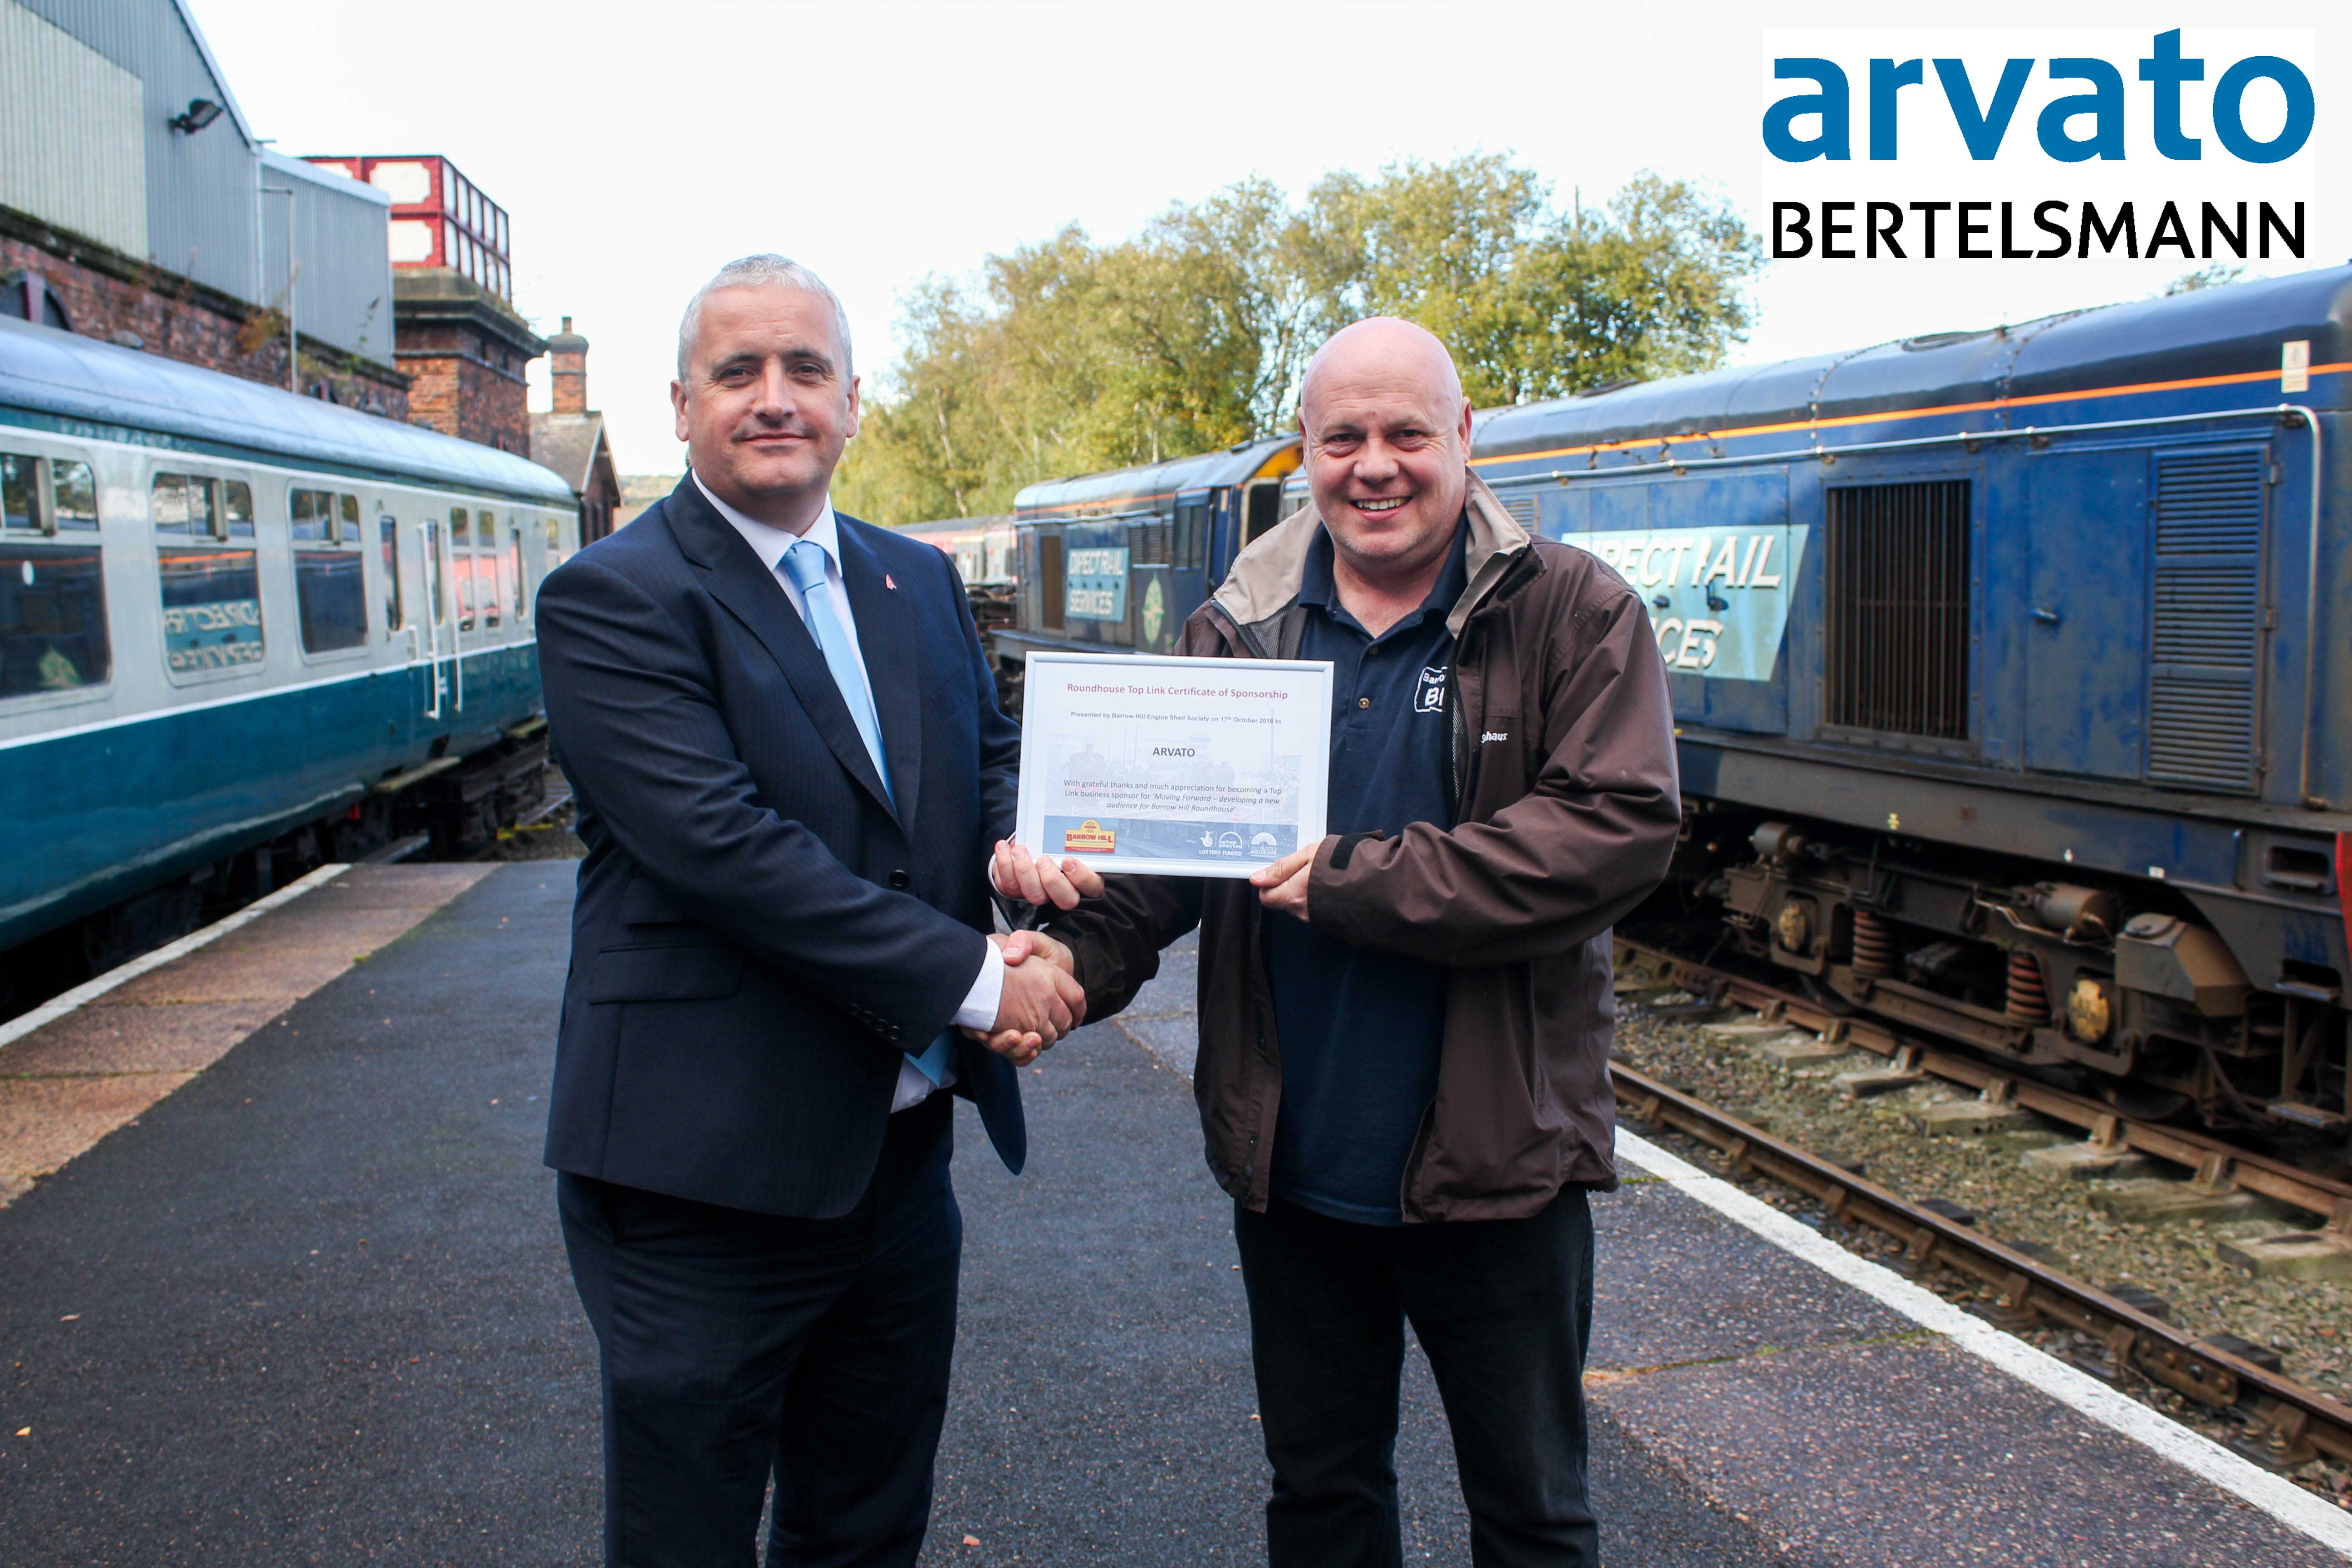 Arvato are Barrow Hill's first Top Link Sponsor to raise money for the moving forward project